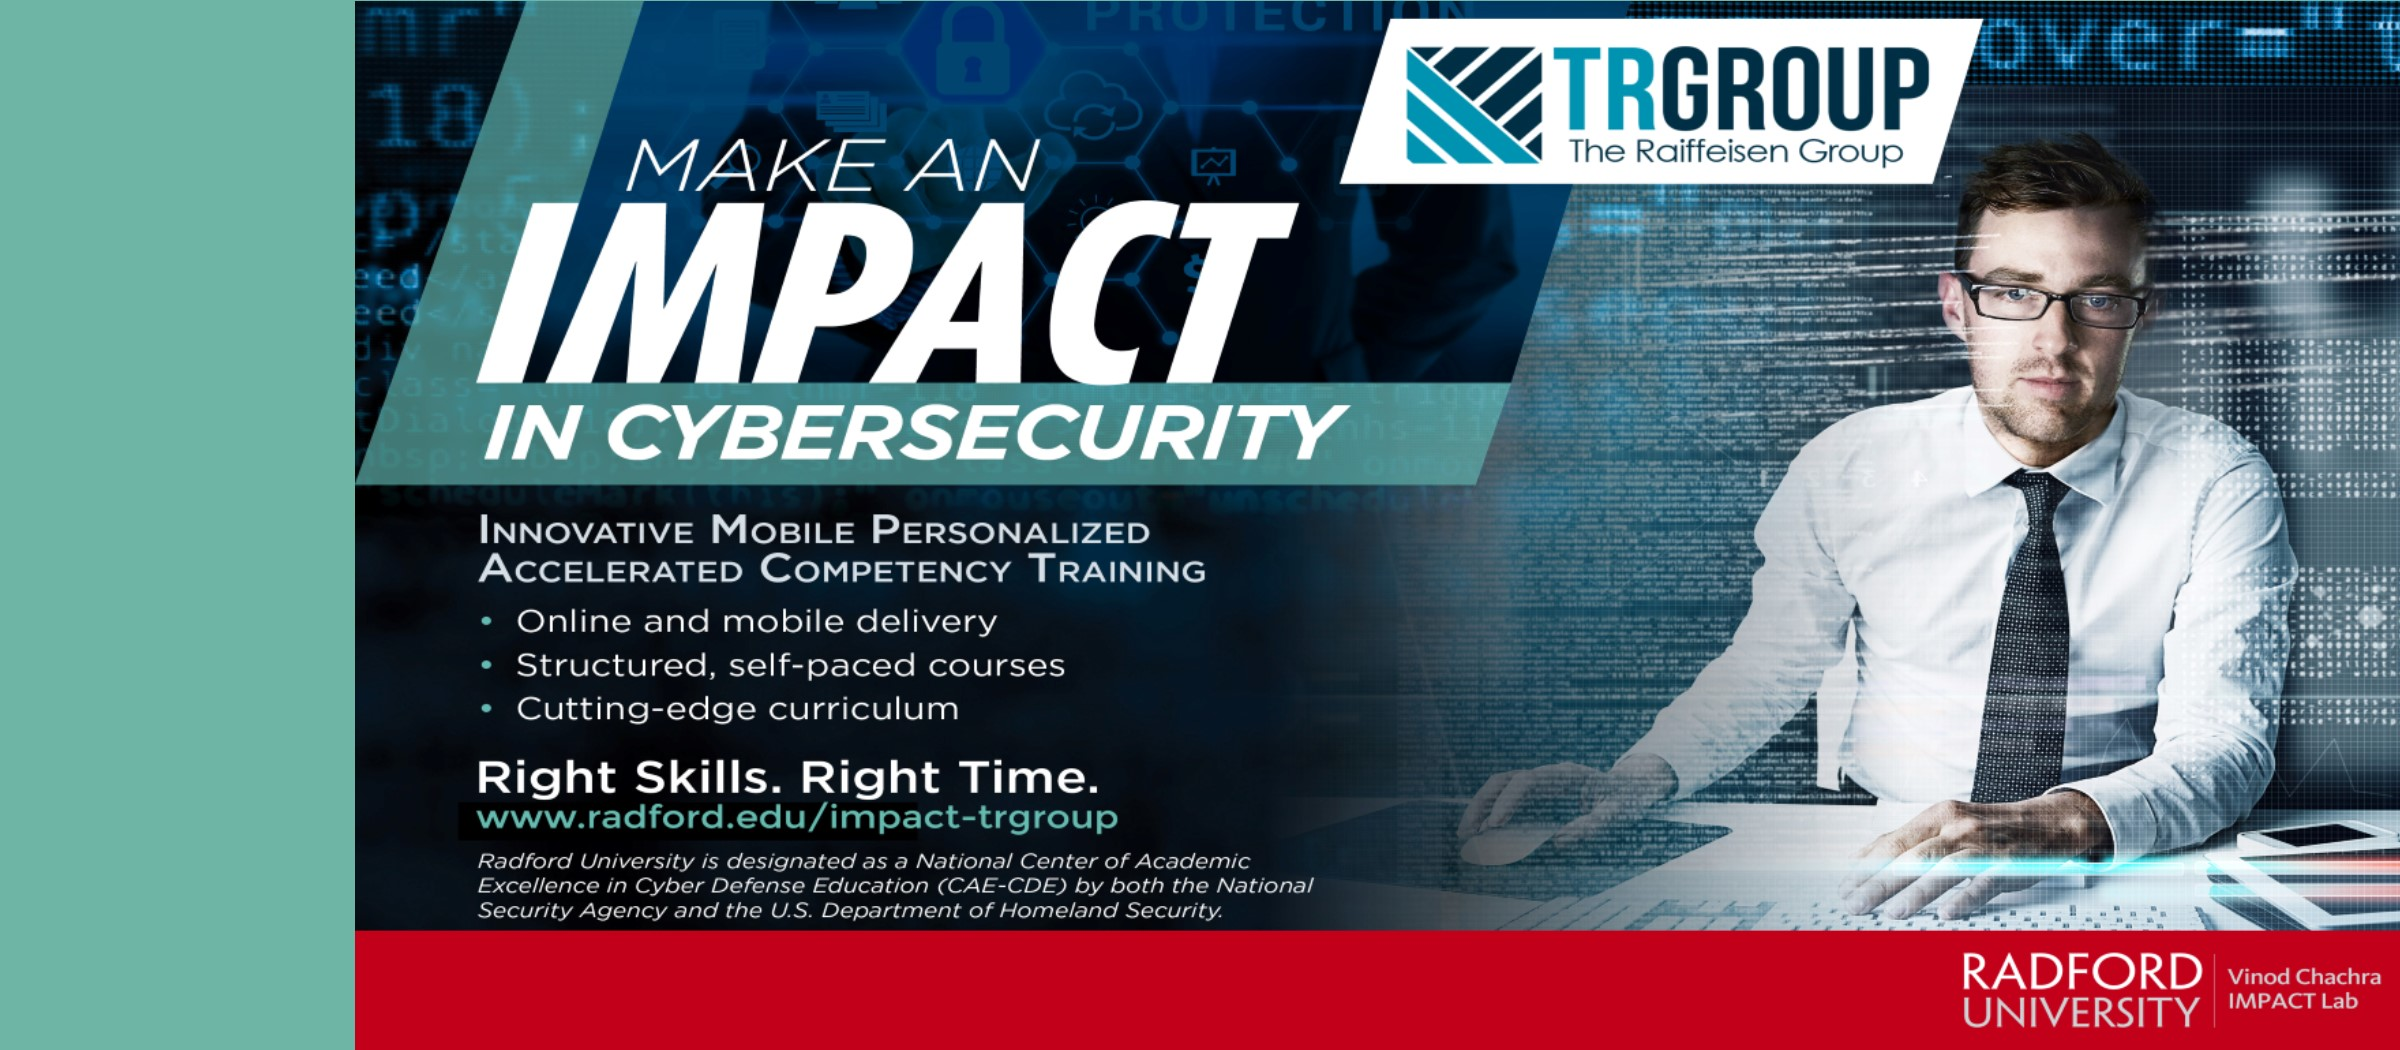 Make an Impact in Cybersecurity